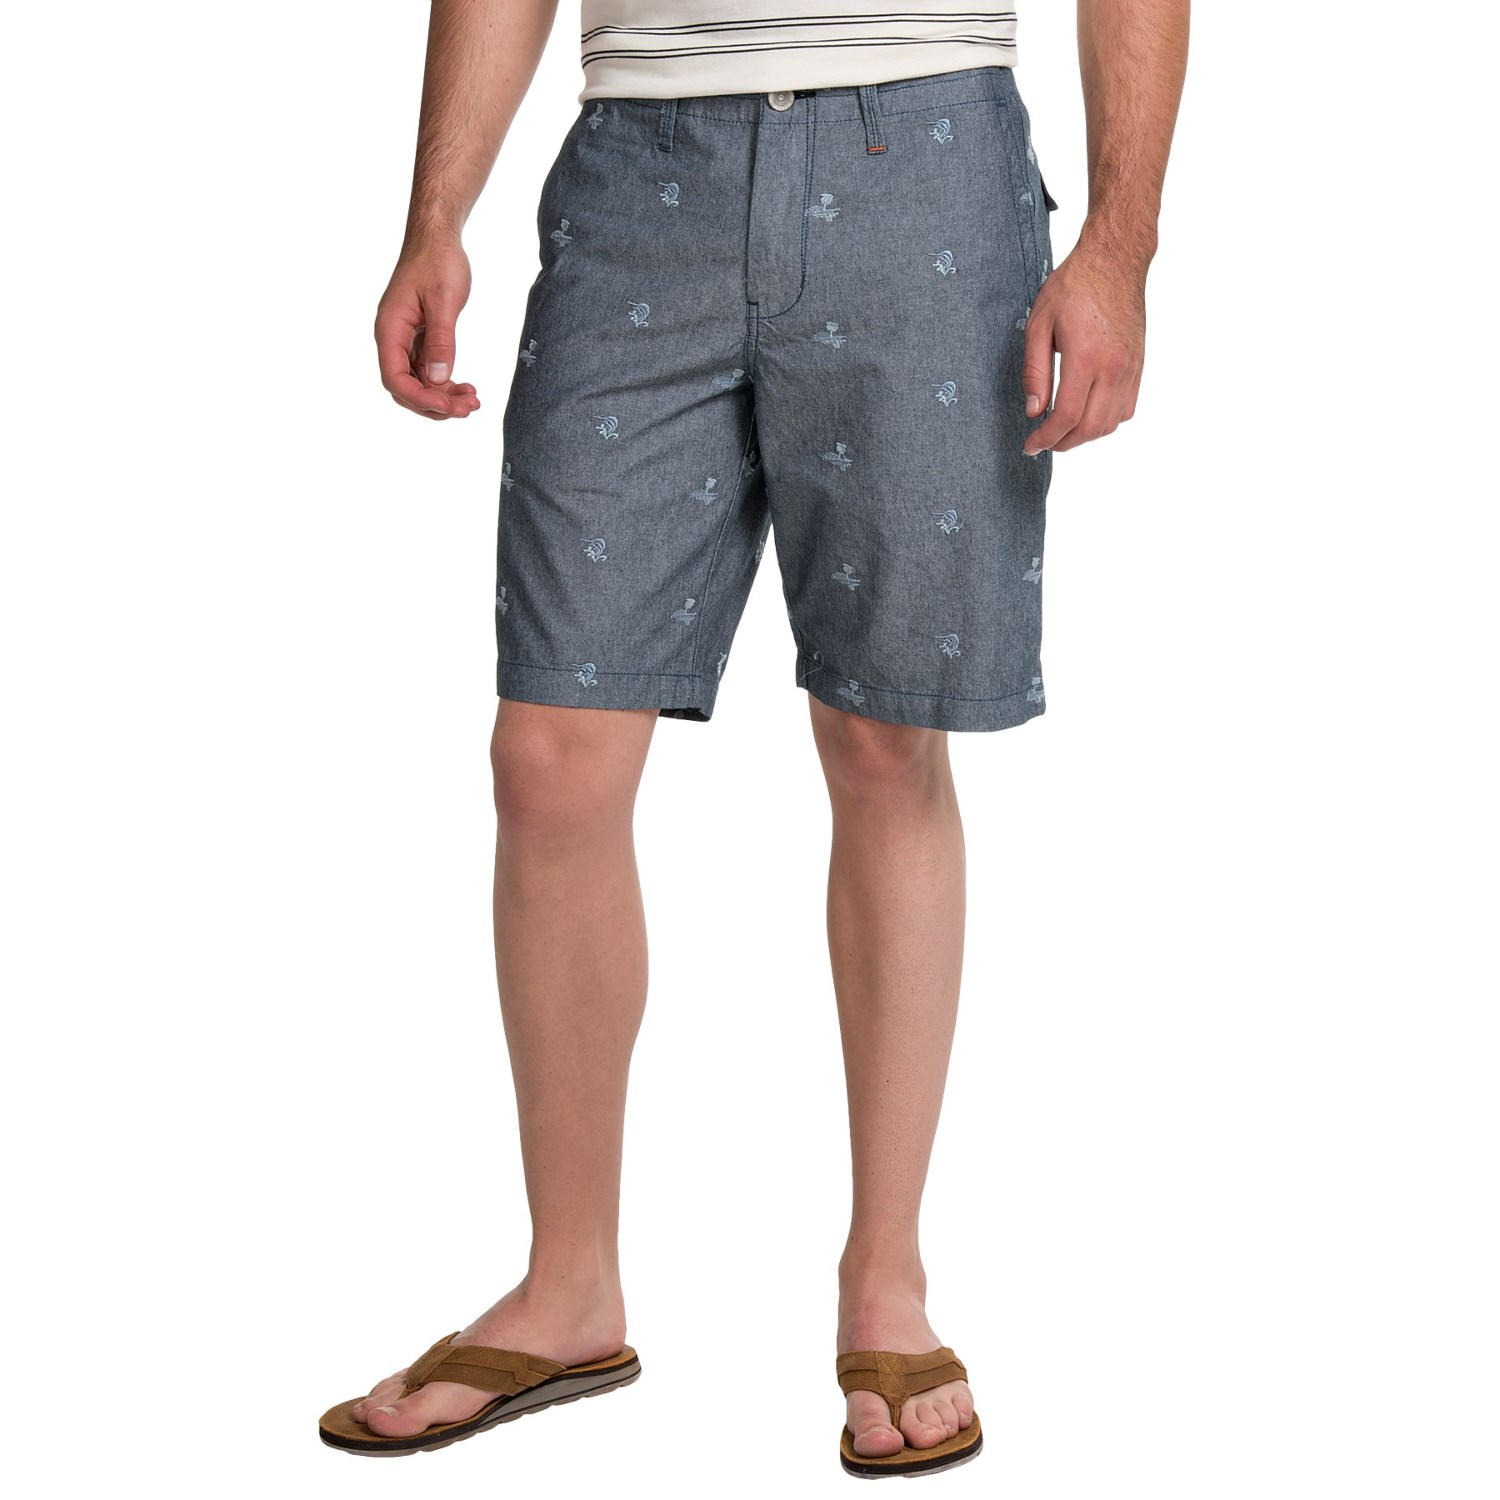 Tommy Bahama Furniture Closeouts #18: Tommy Bahama Forte Dei Marlin Shorts (For Men) In Caspian Sea - Closeouts